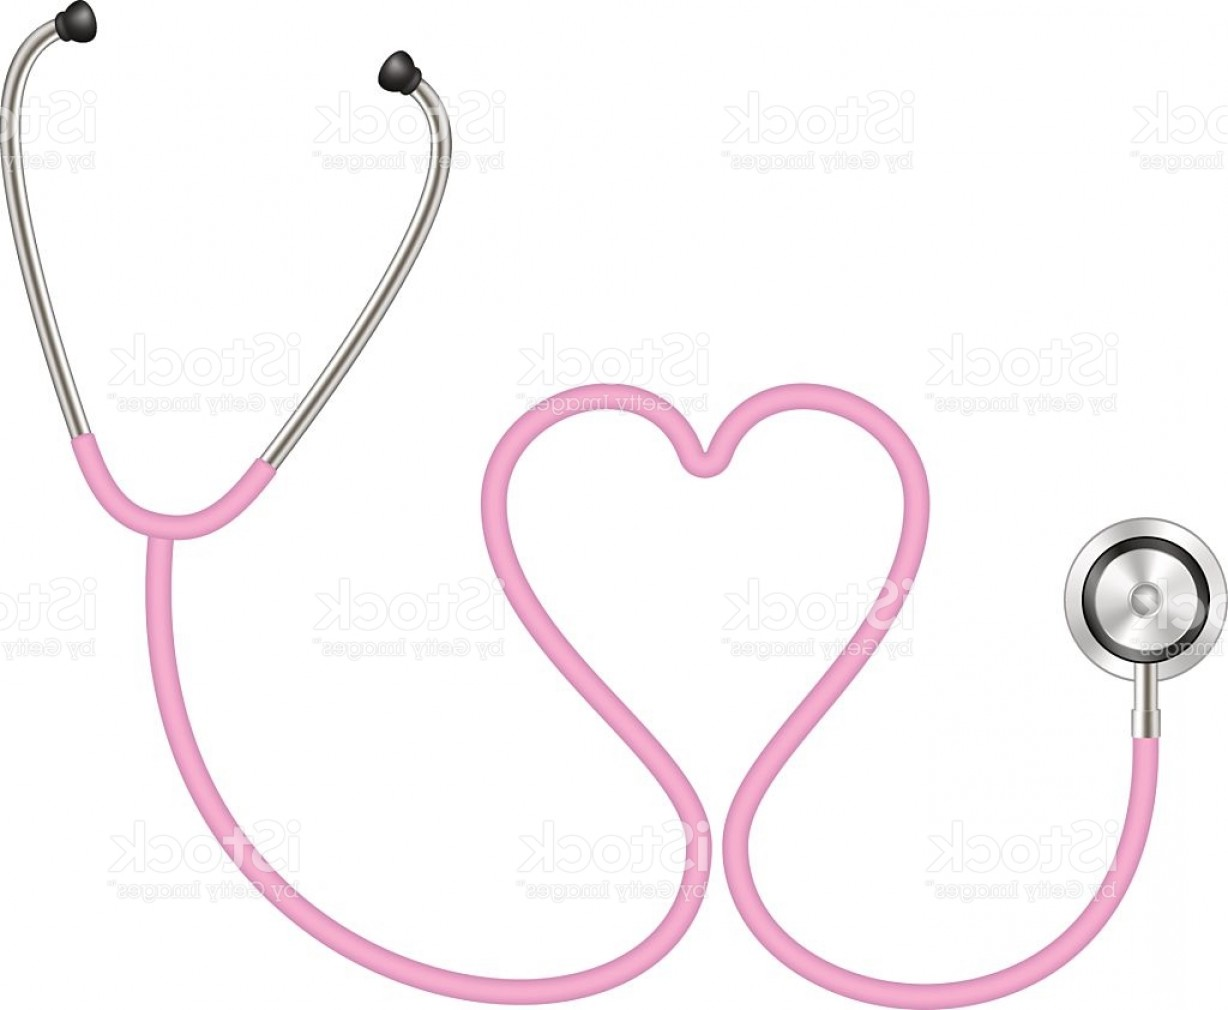 Stethoscope With Heart Vector Art: Stethoscope In Shape Of Heart In Pink Design Gm